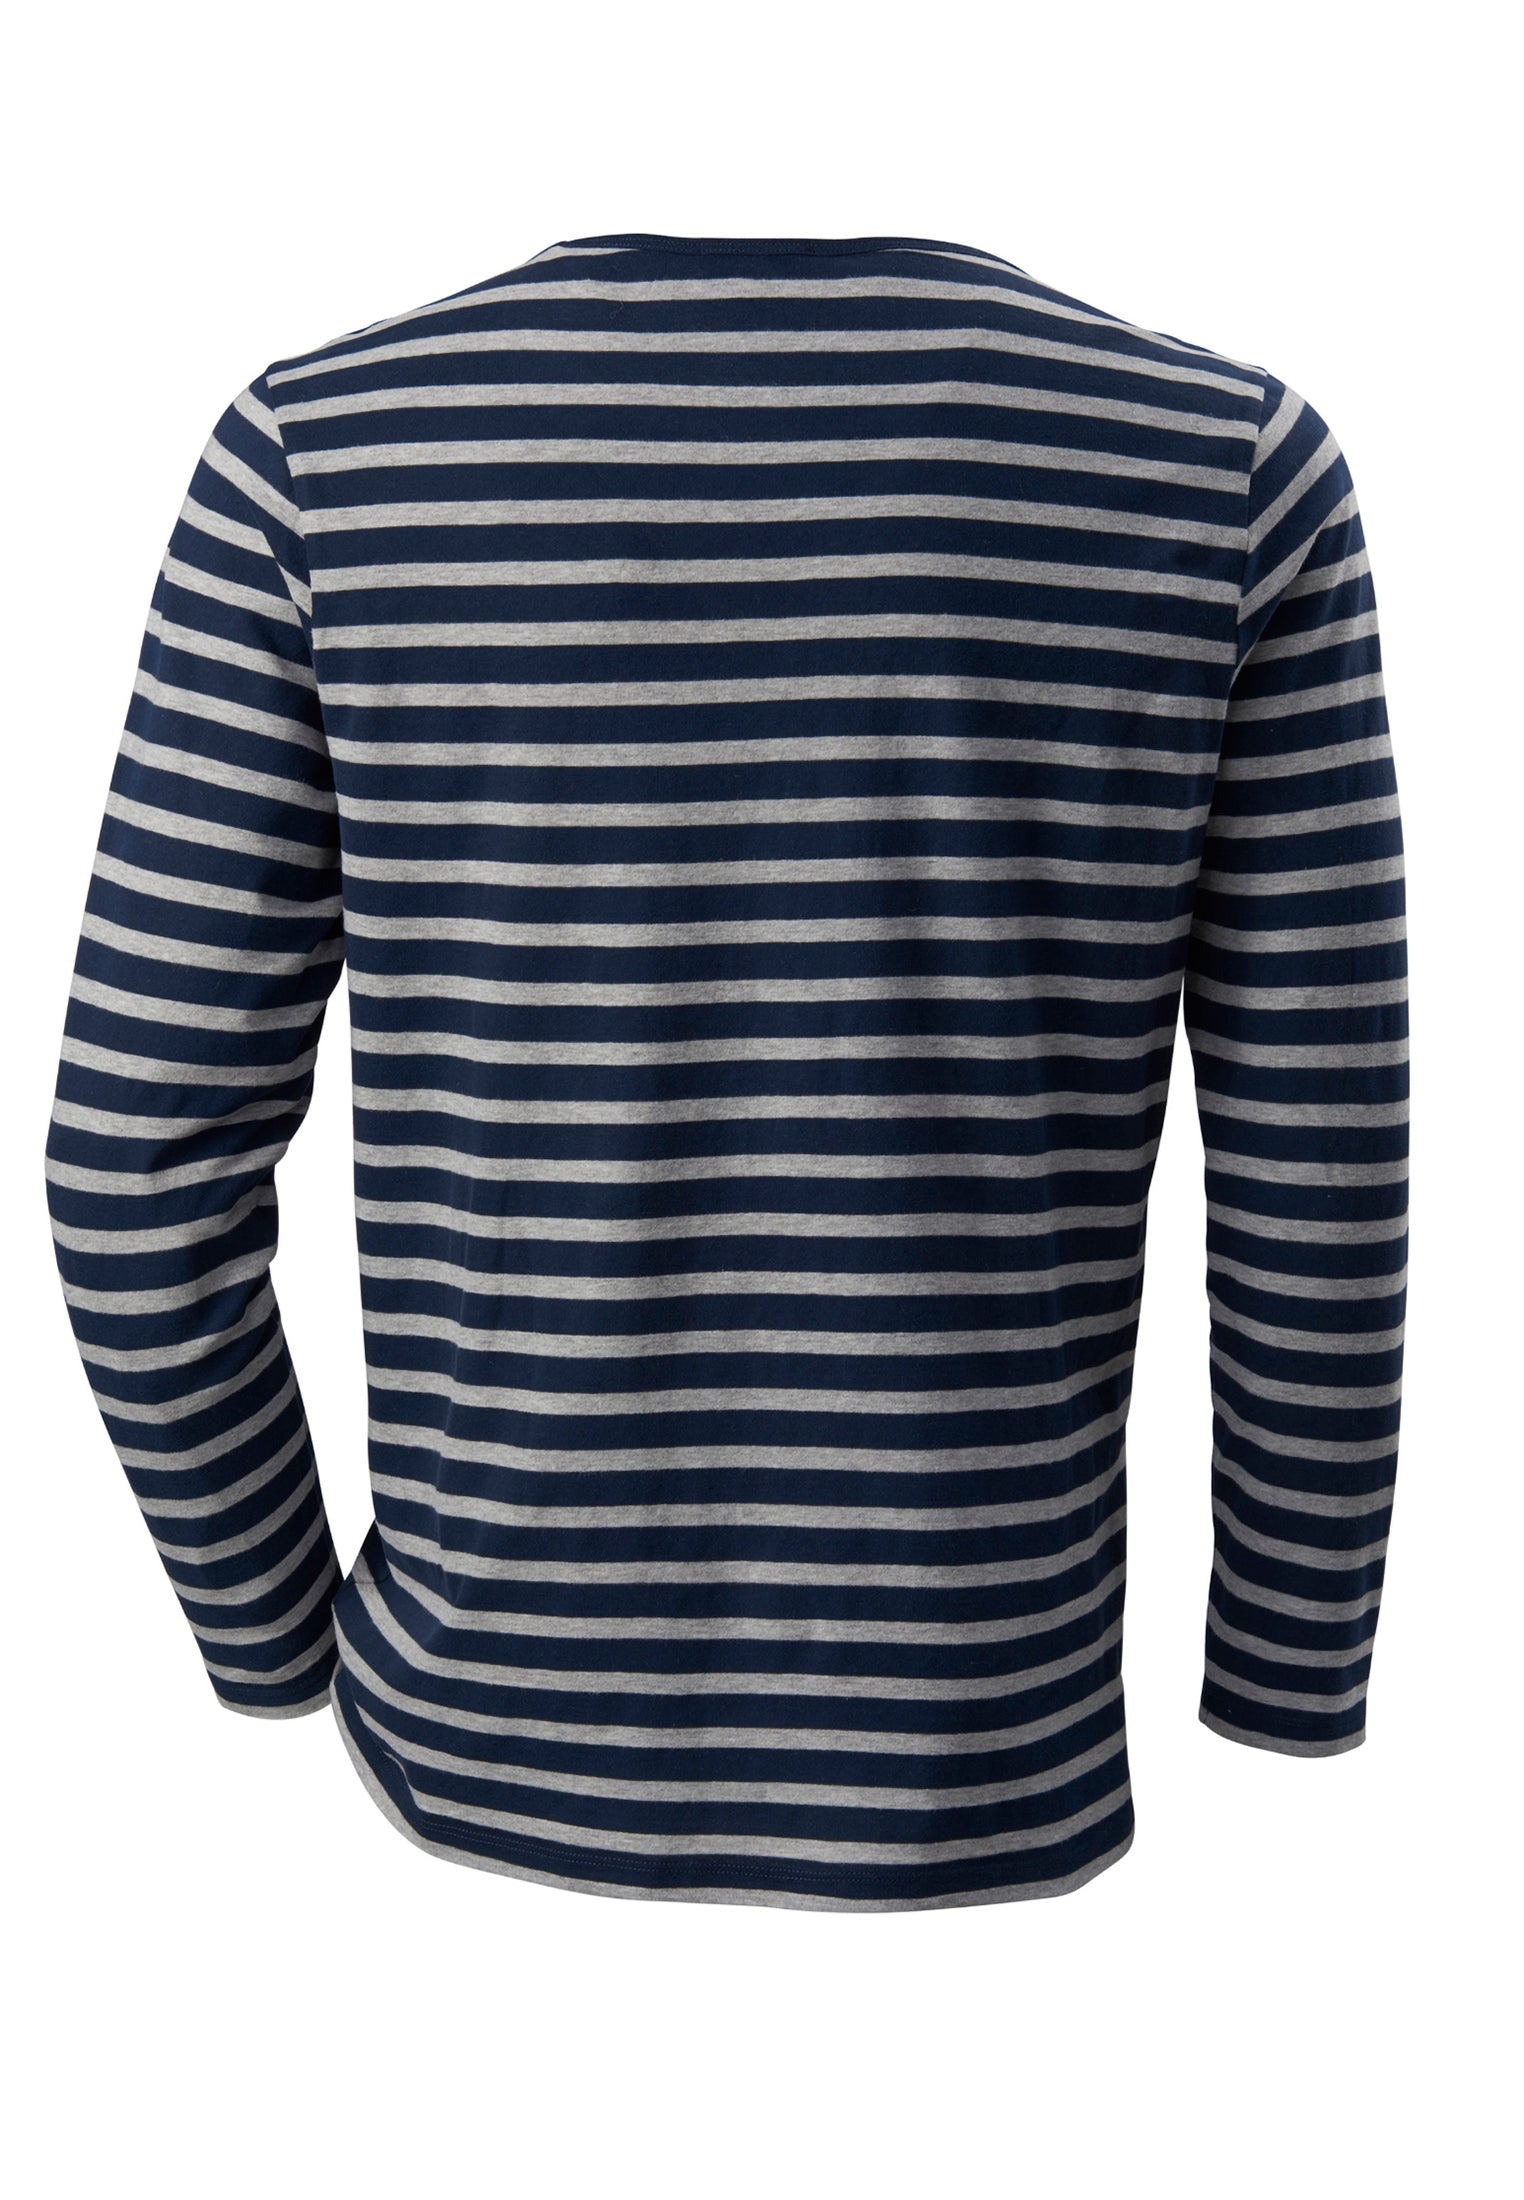 The Longsleeve Stripes Navy/Grey